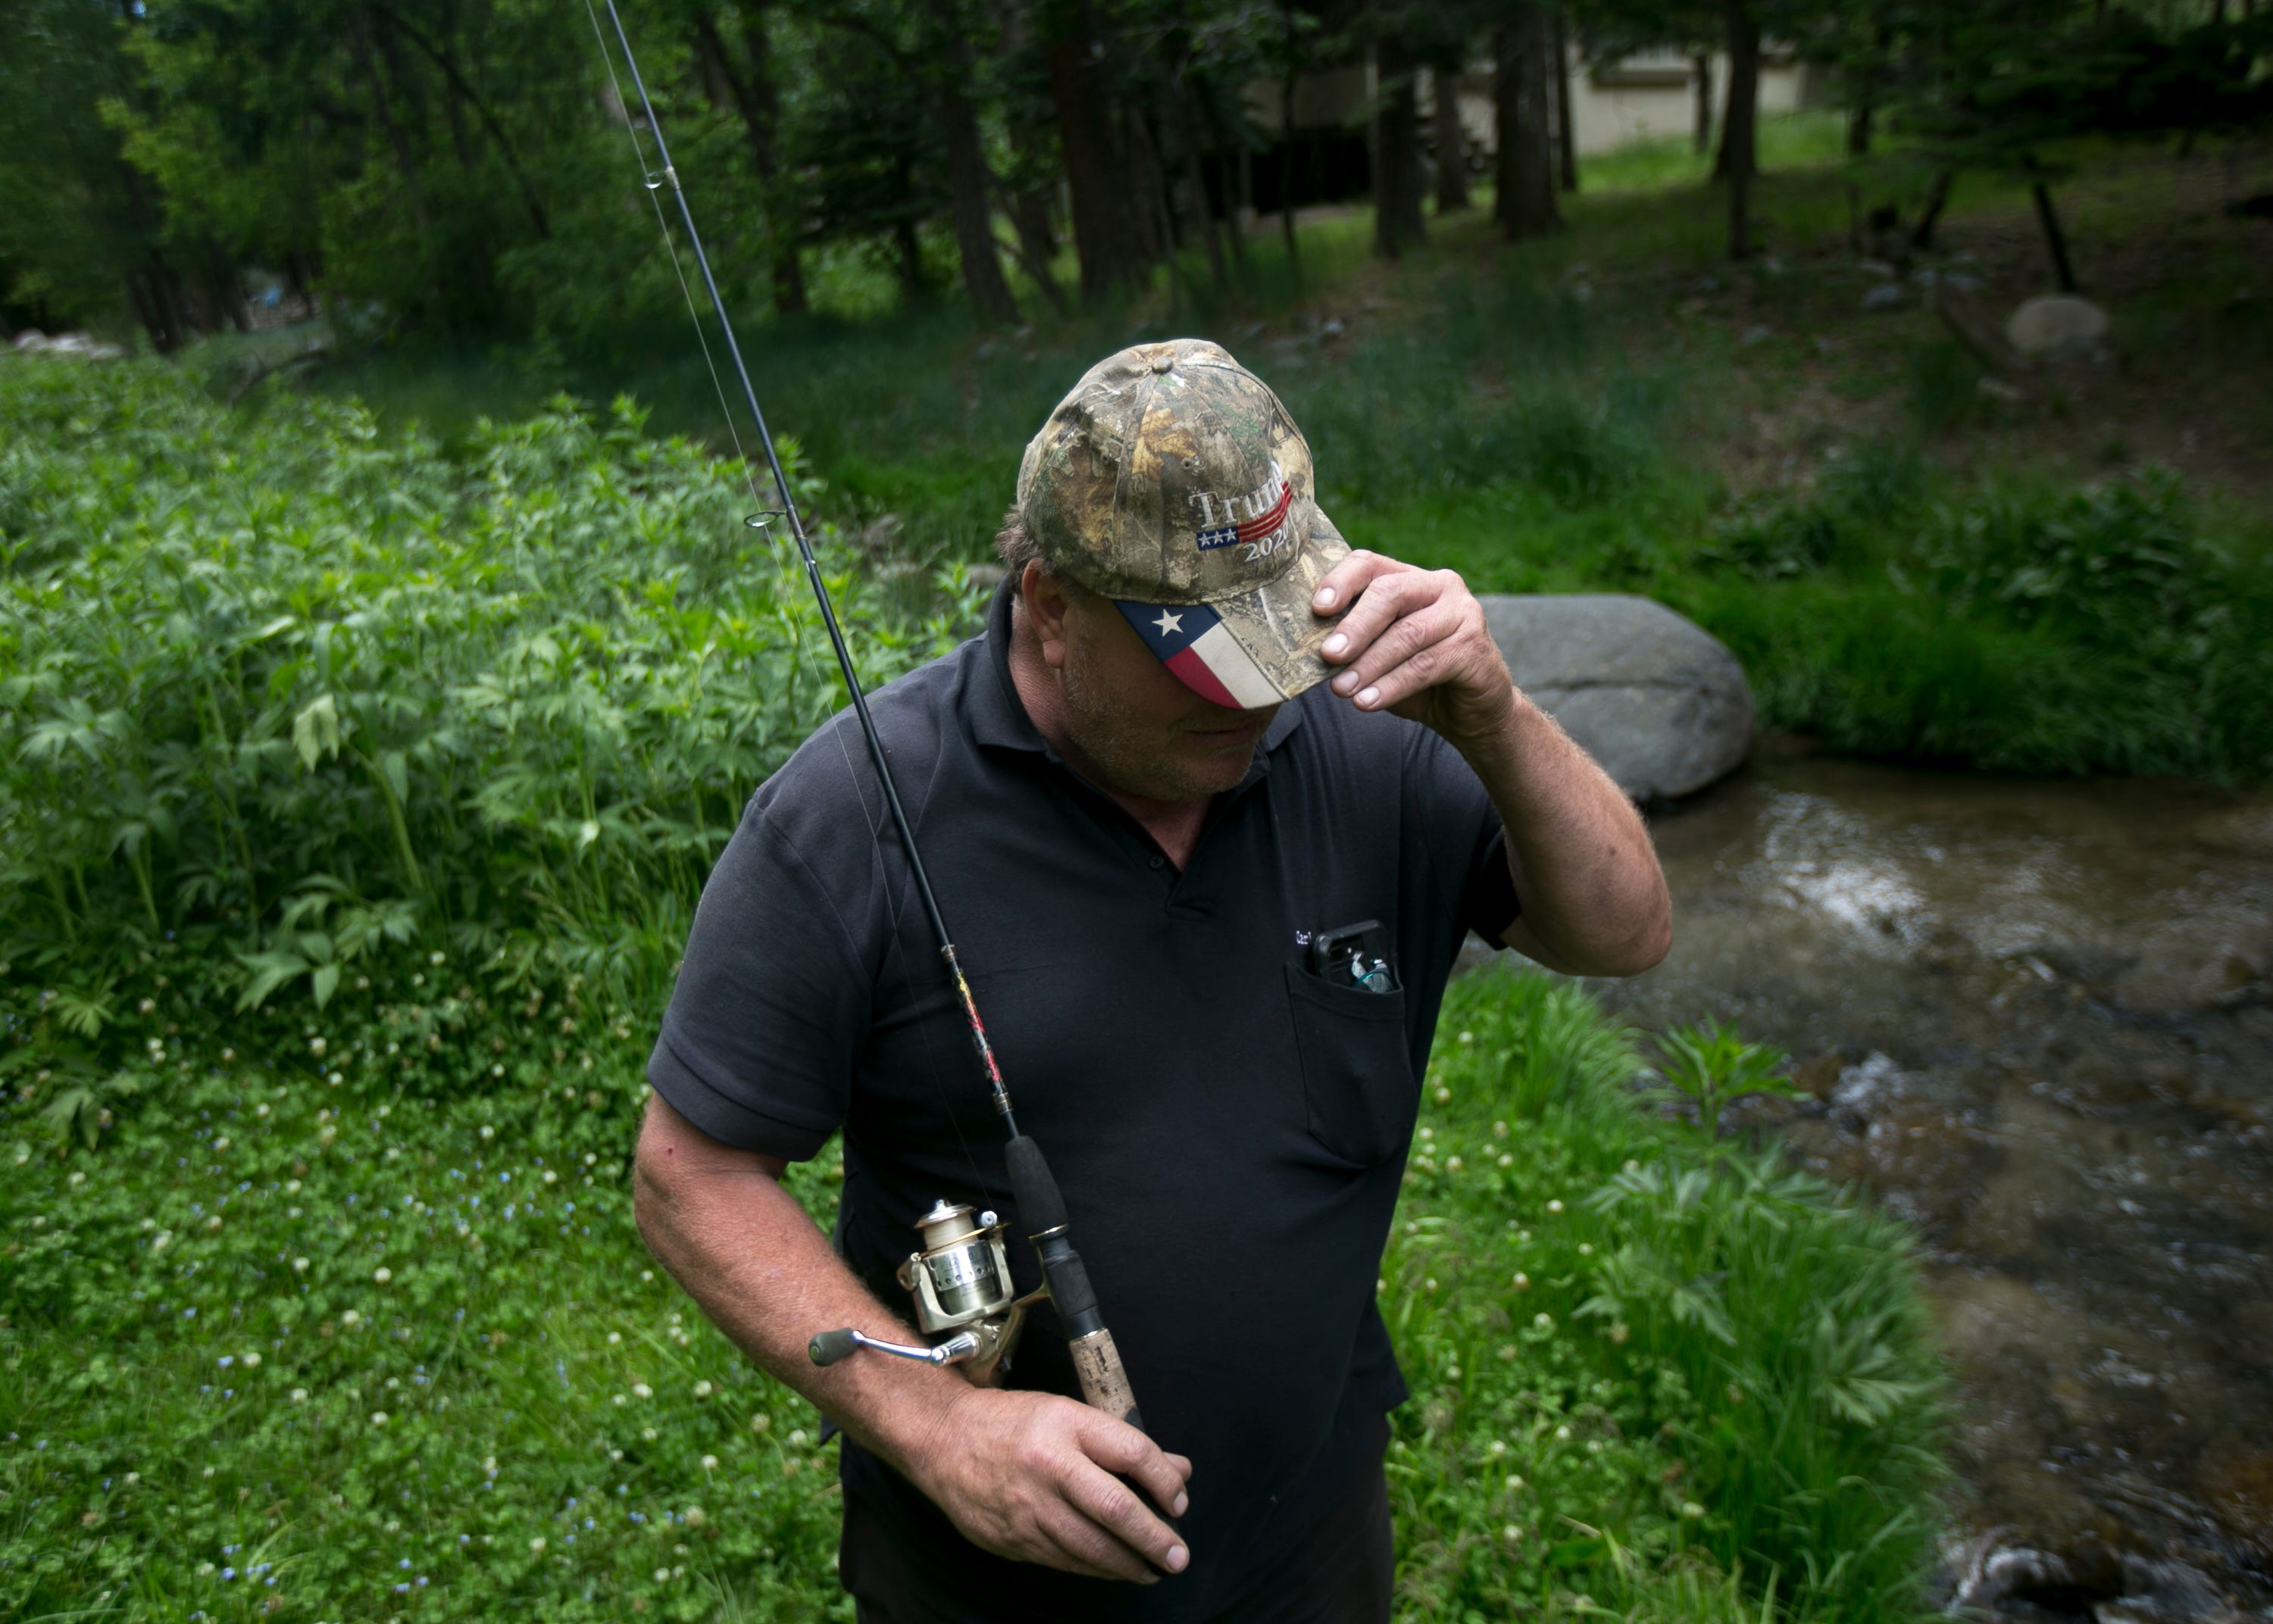 Jim Carlen, a tourist from Lubbock, Texas, fishes a creek in Ruidoso, New Mexico, on June 1, 2019. Carlen has been visiting for nearly 30 years.